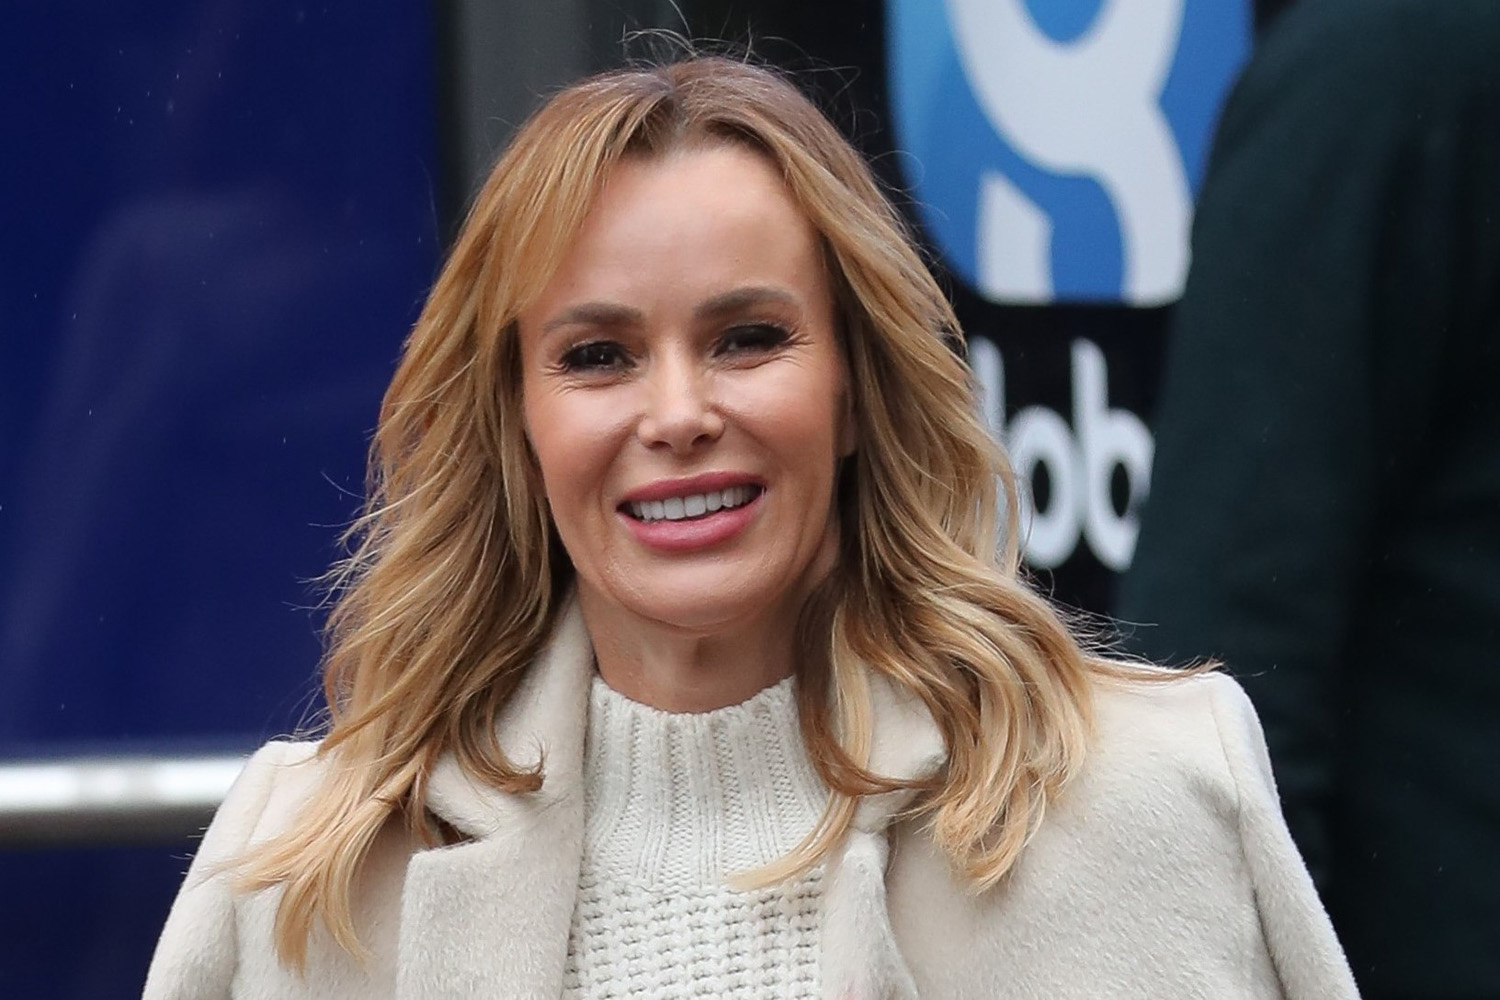 Amanda Holden and husband enjoy romantic date night in driveway